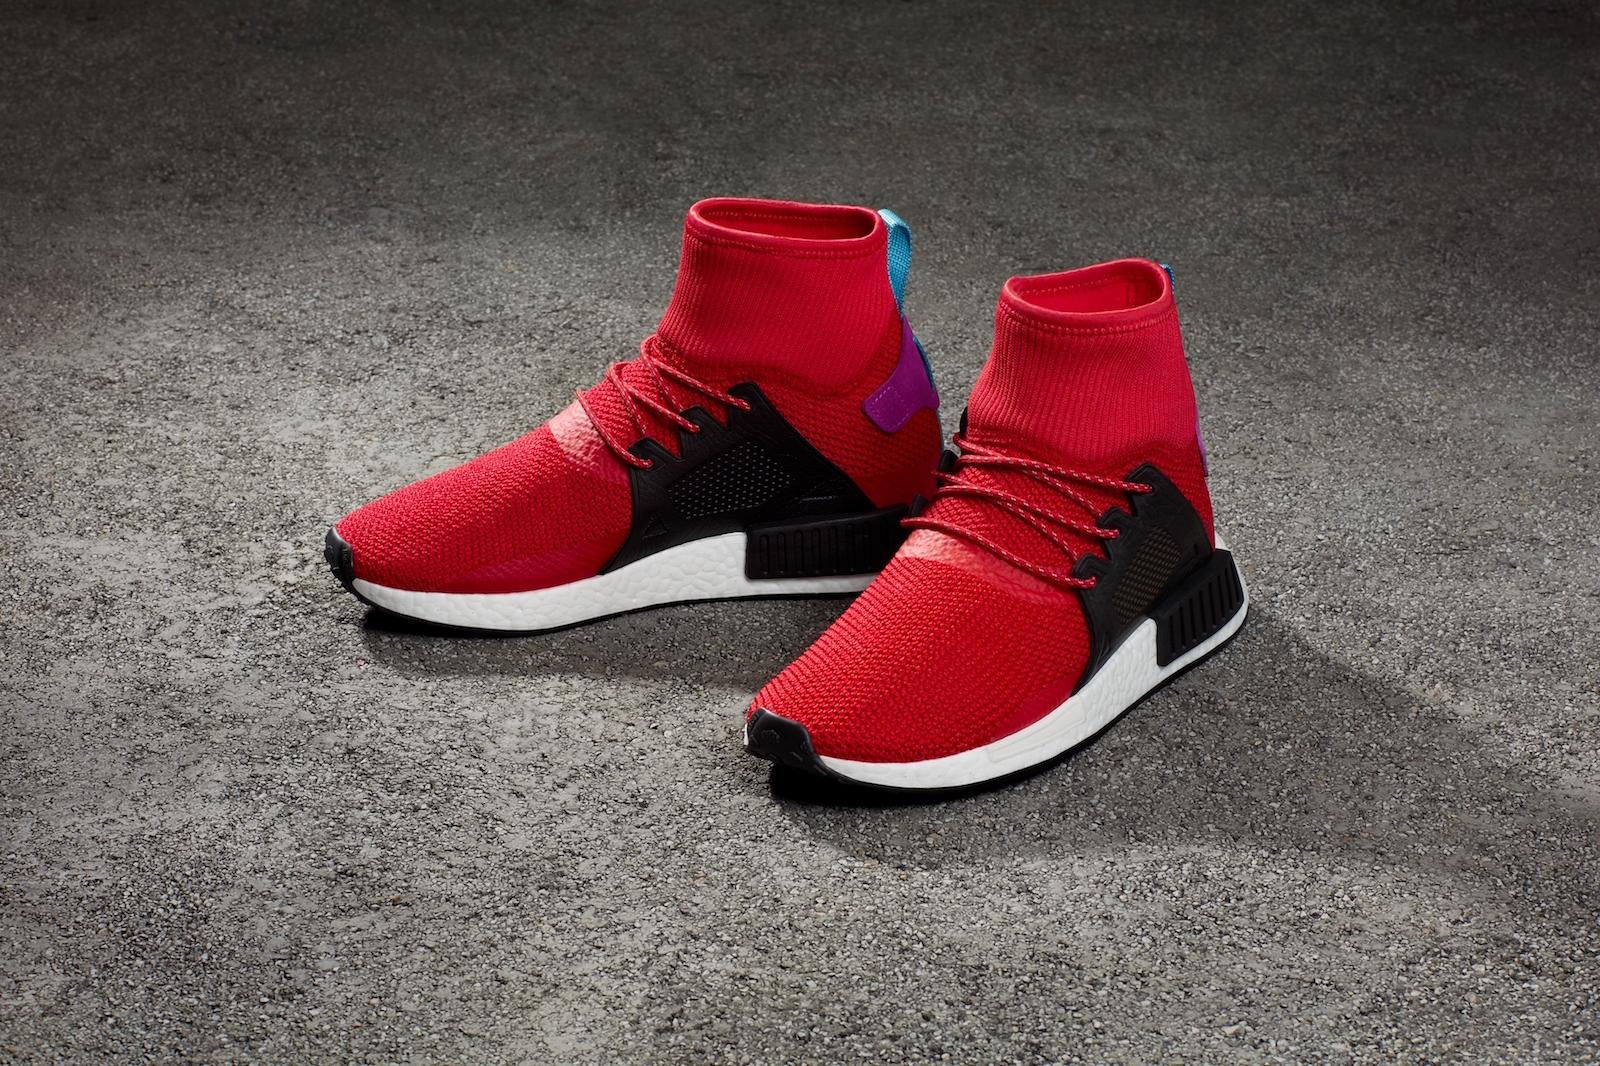 bda817ff4 adidas originals NMD XR1 winter 2 - WearTesters